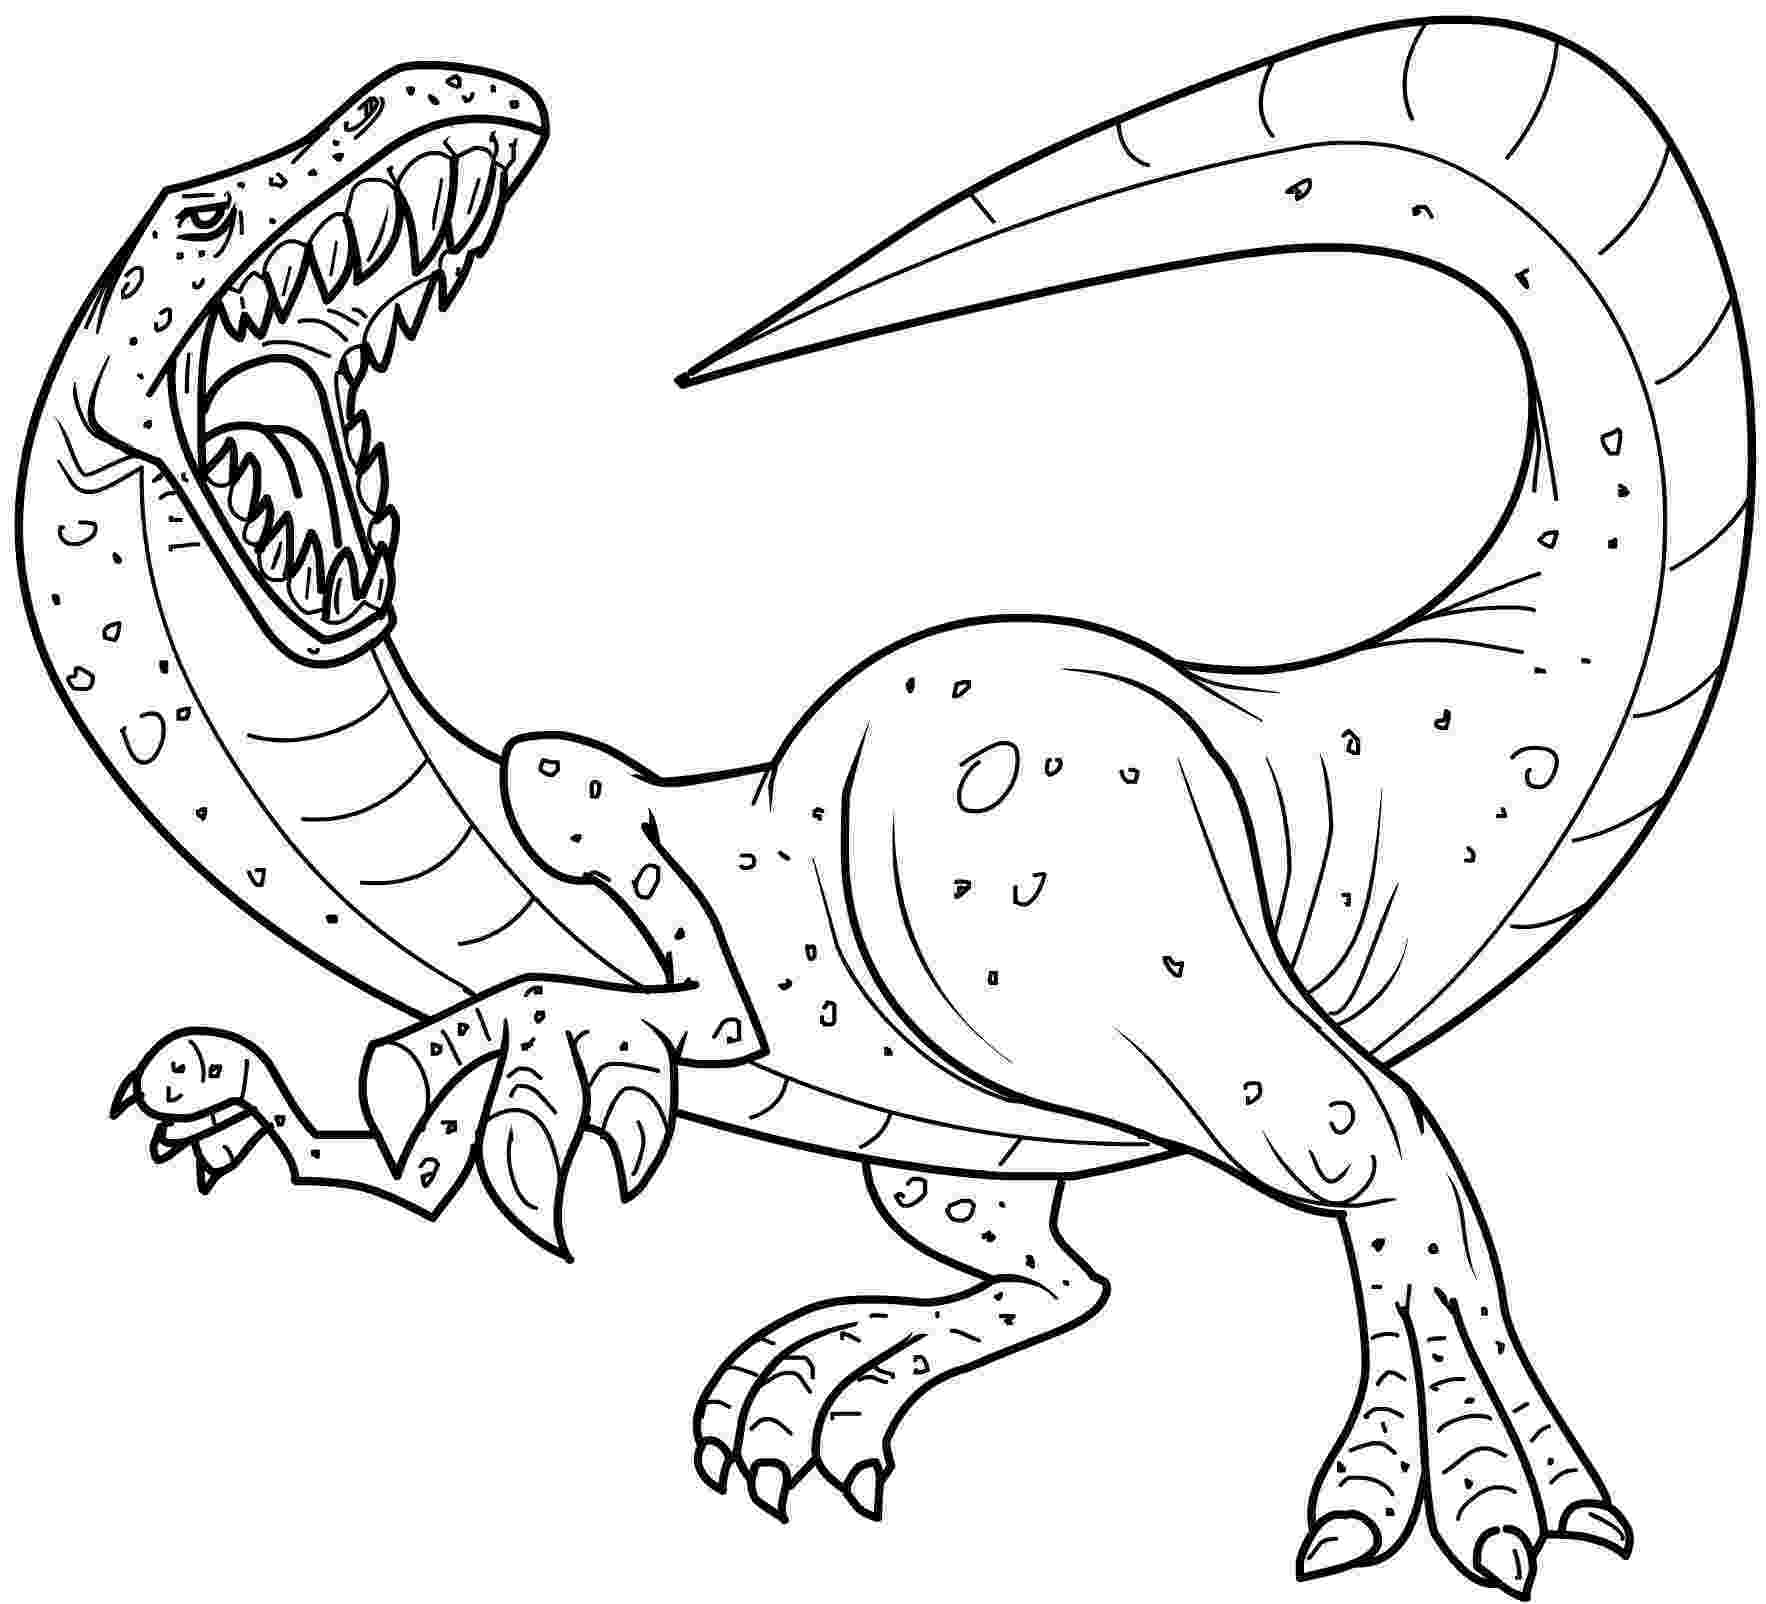 dinosaur colouring page free printable dinosaur coloring pages for kids colouring page dinosaur